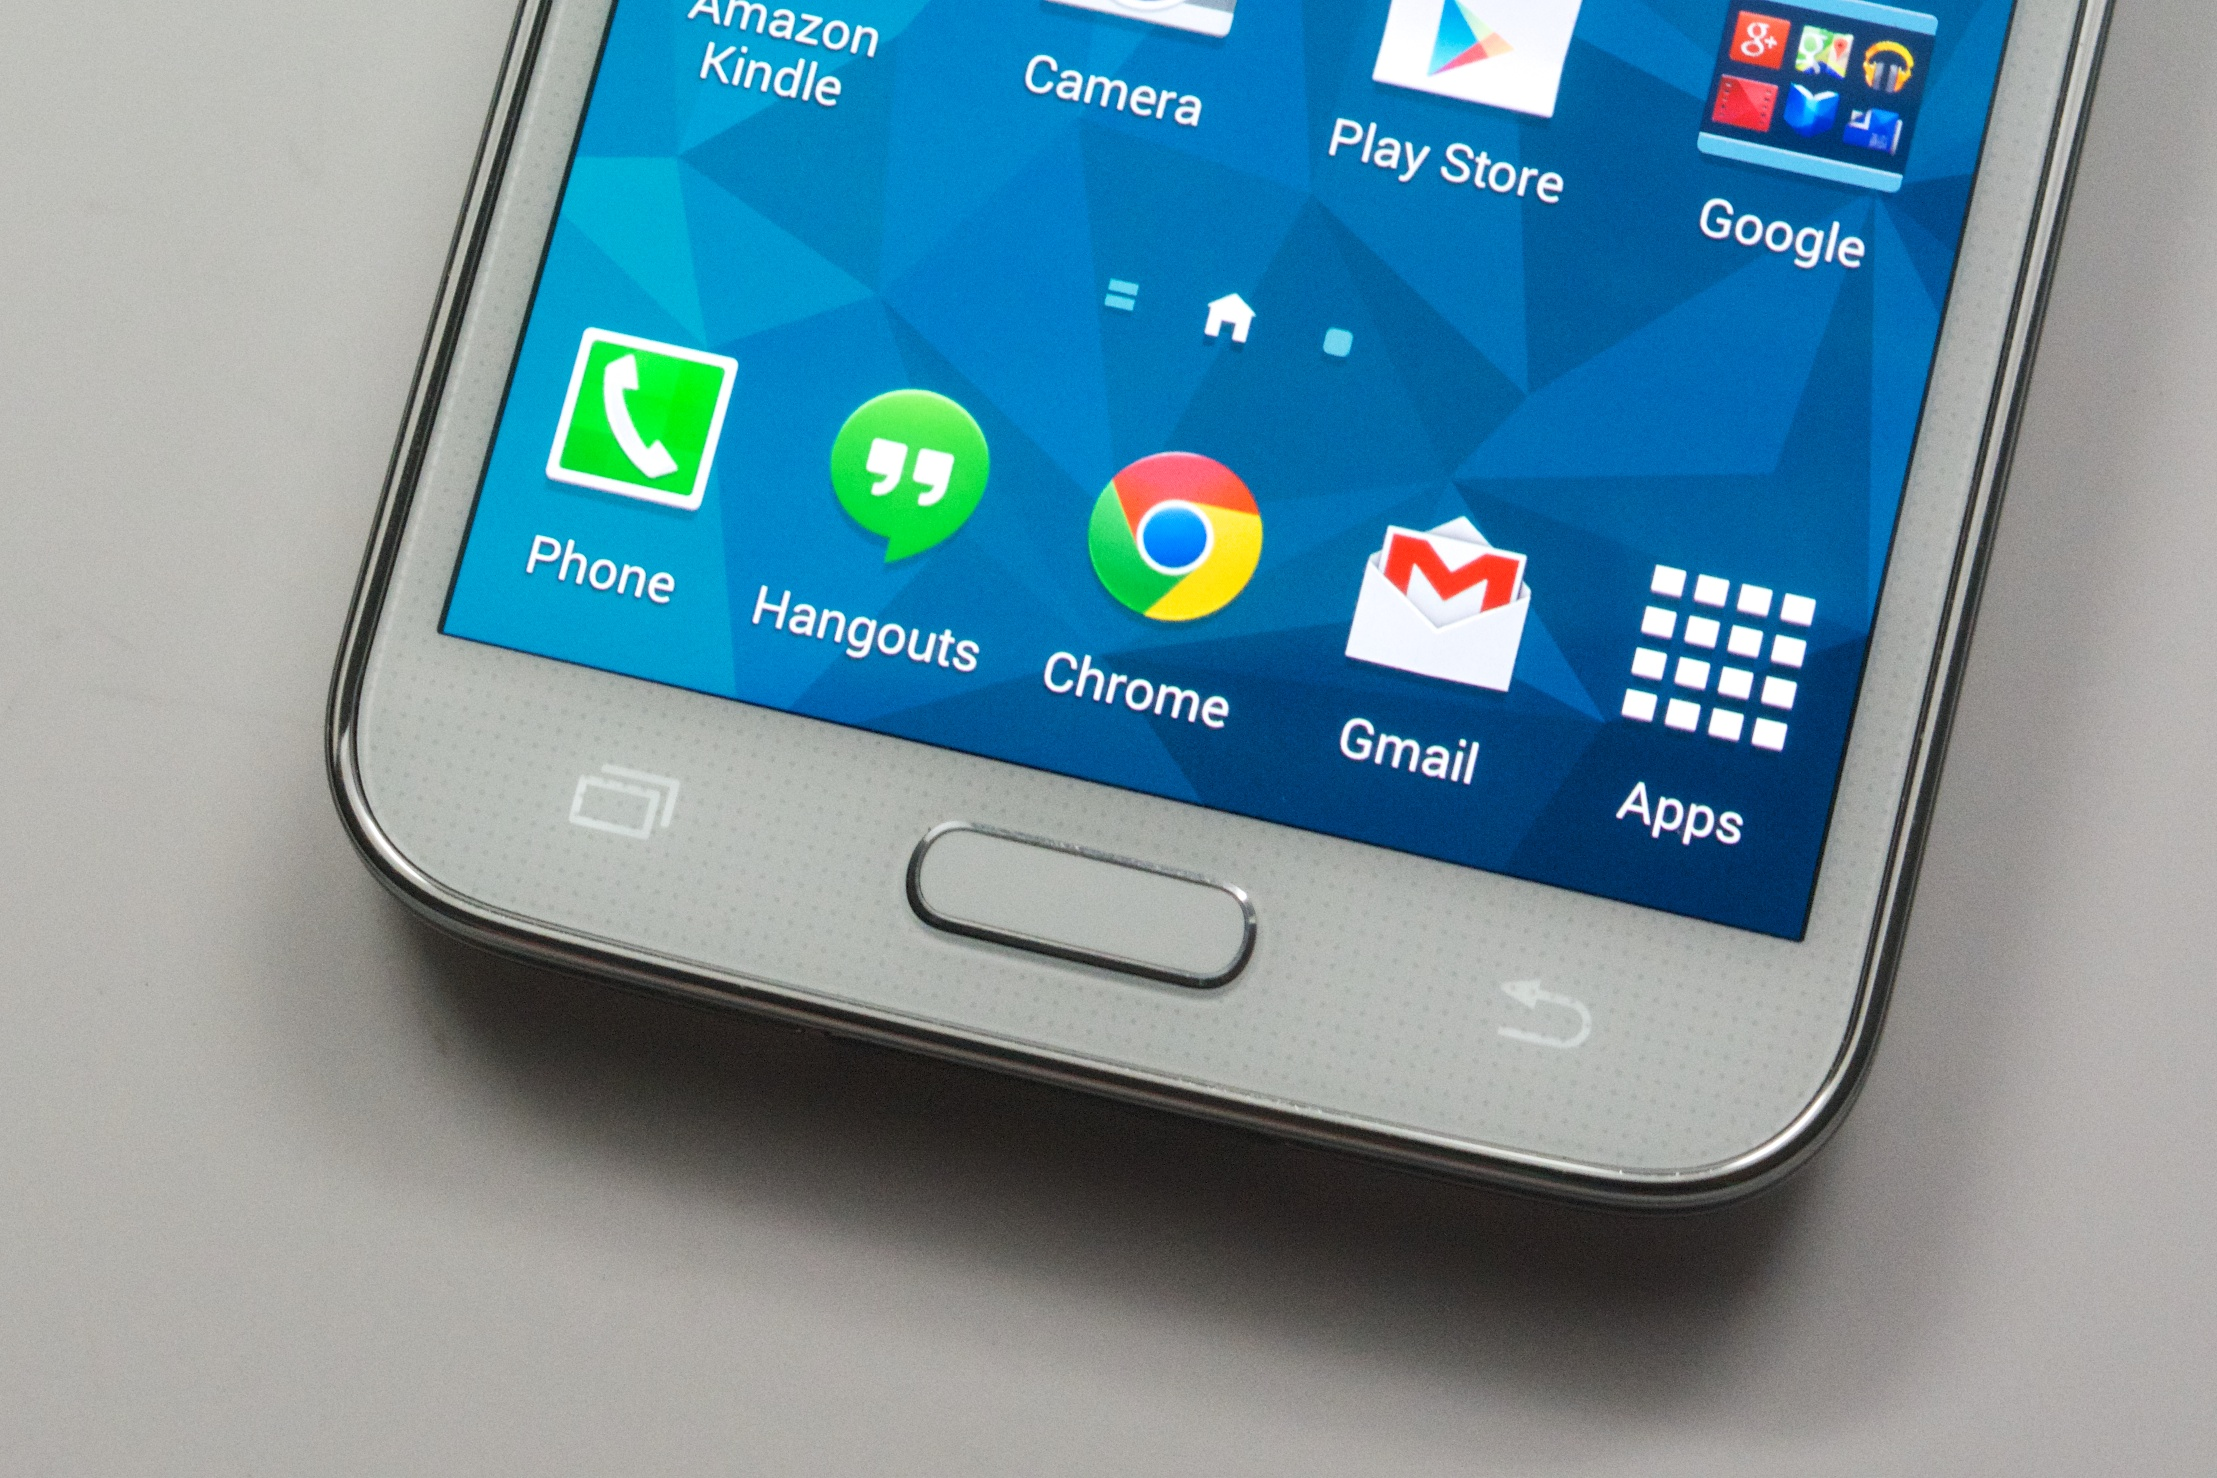 Samsung galaxy s4 mini coming soon at telstra in australia - Galaxy S5 Review 6